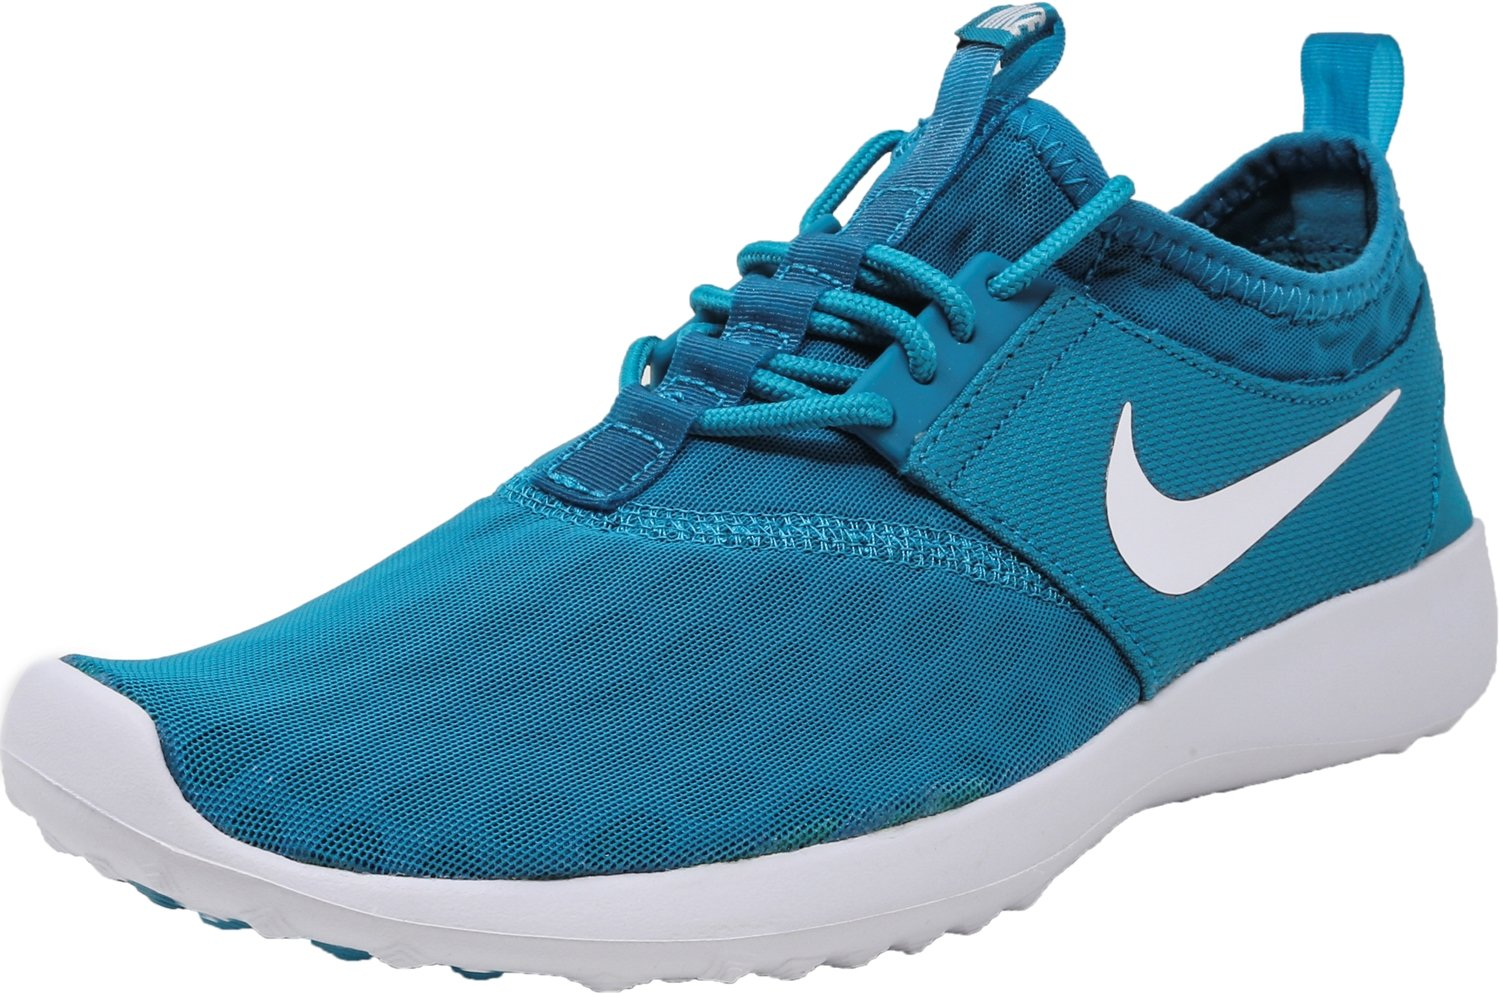 NIKE Women's Juvenate Running Shoe B074T8B9T1 5.5 M US|Blustery/Black White